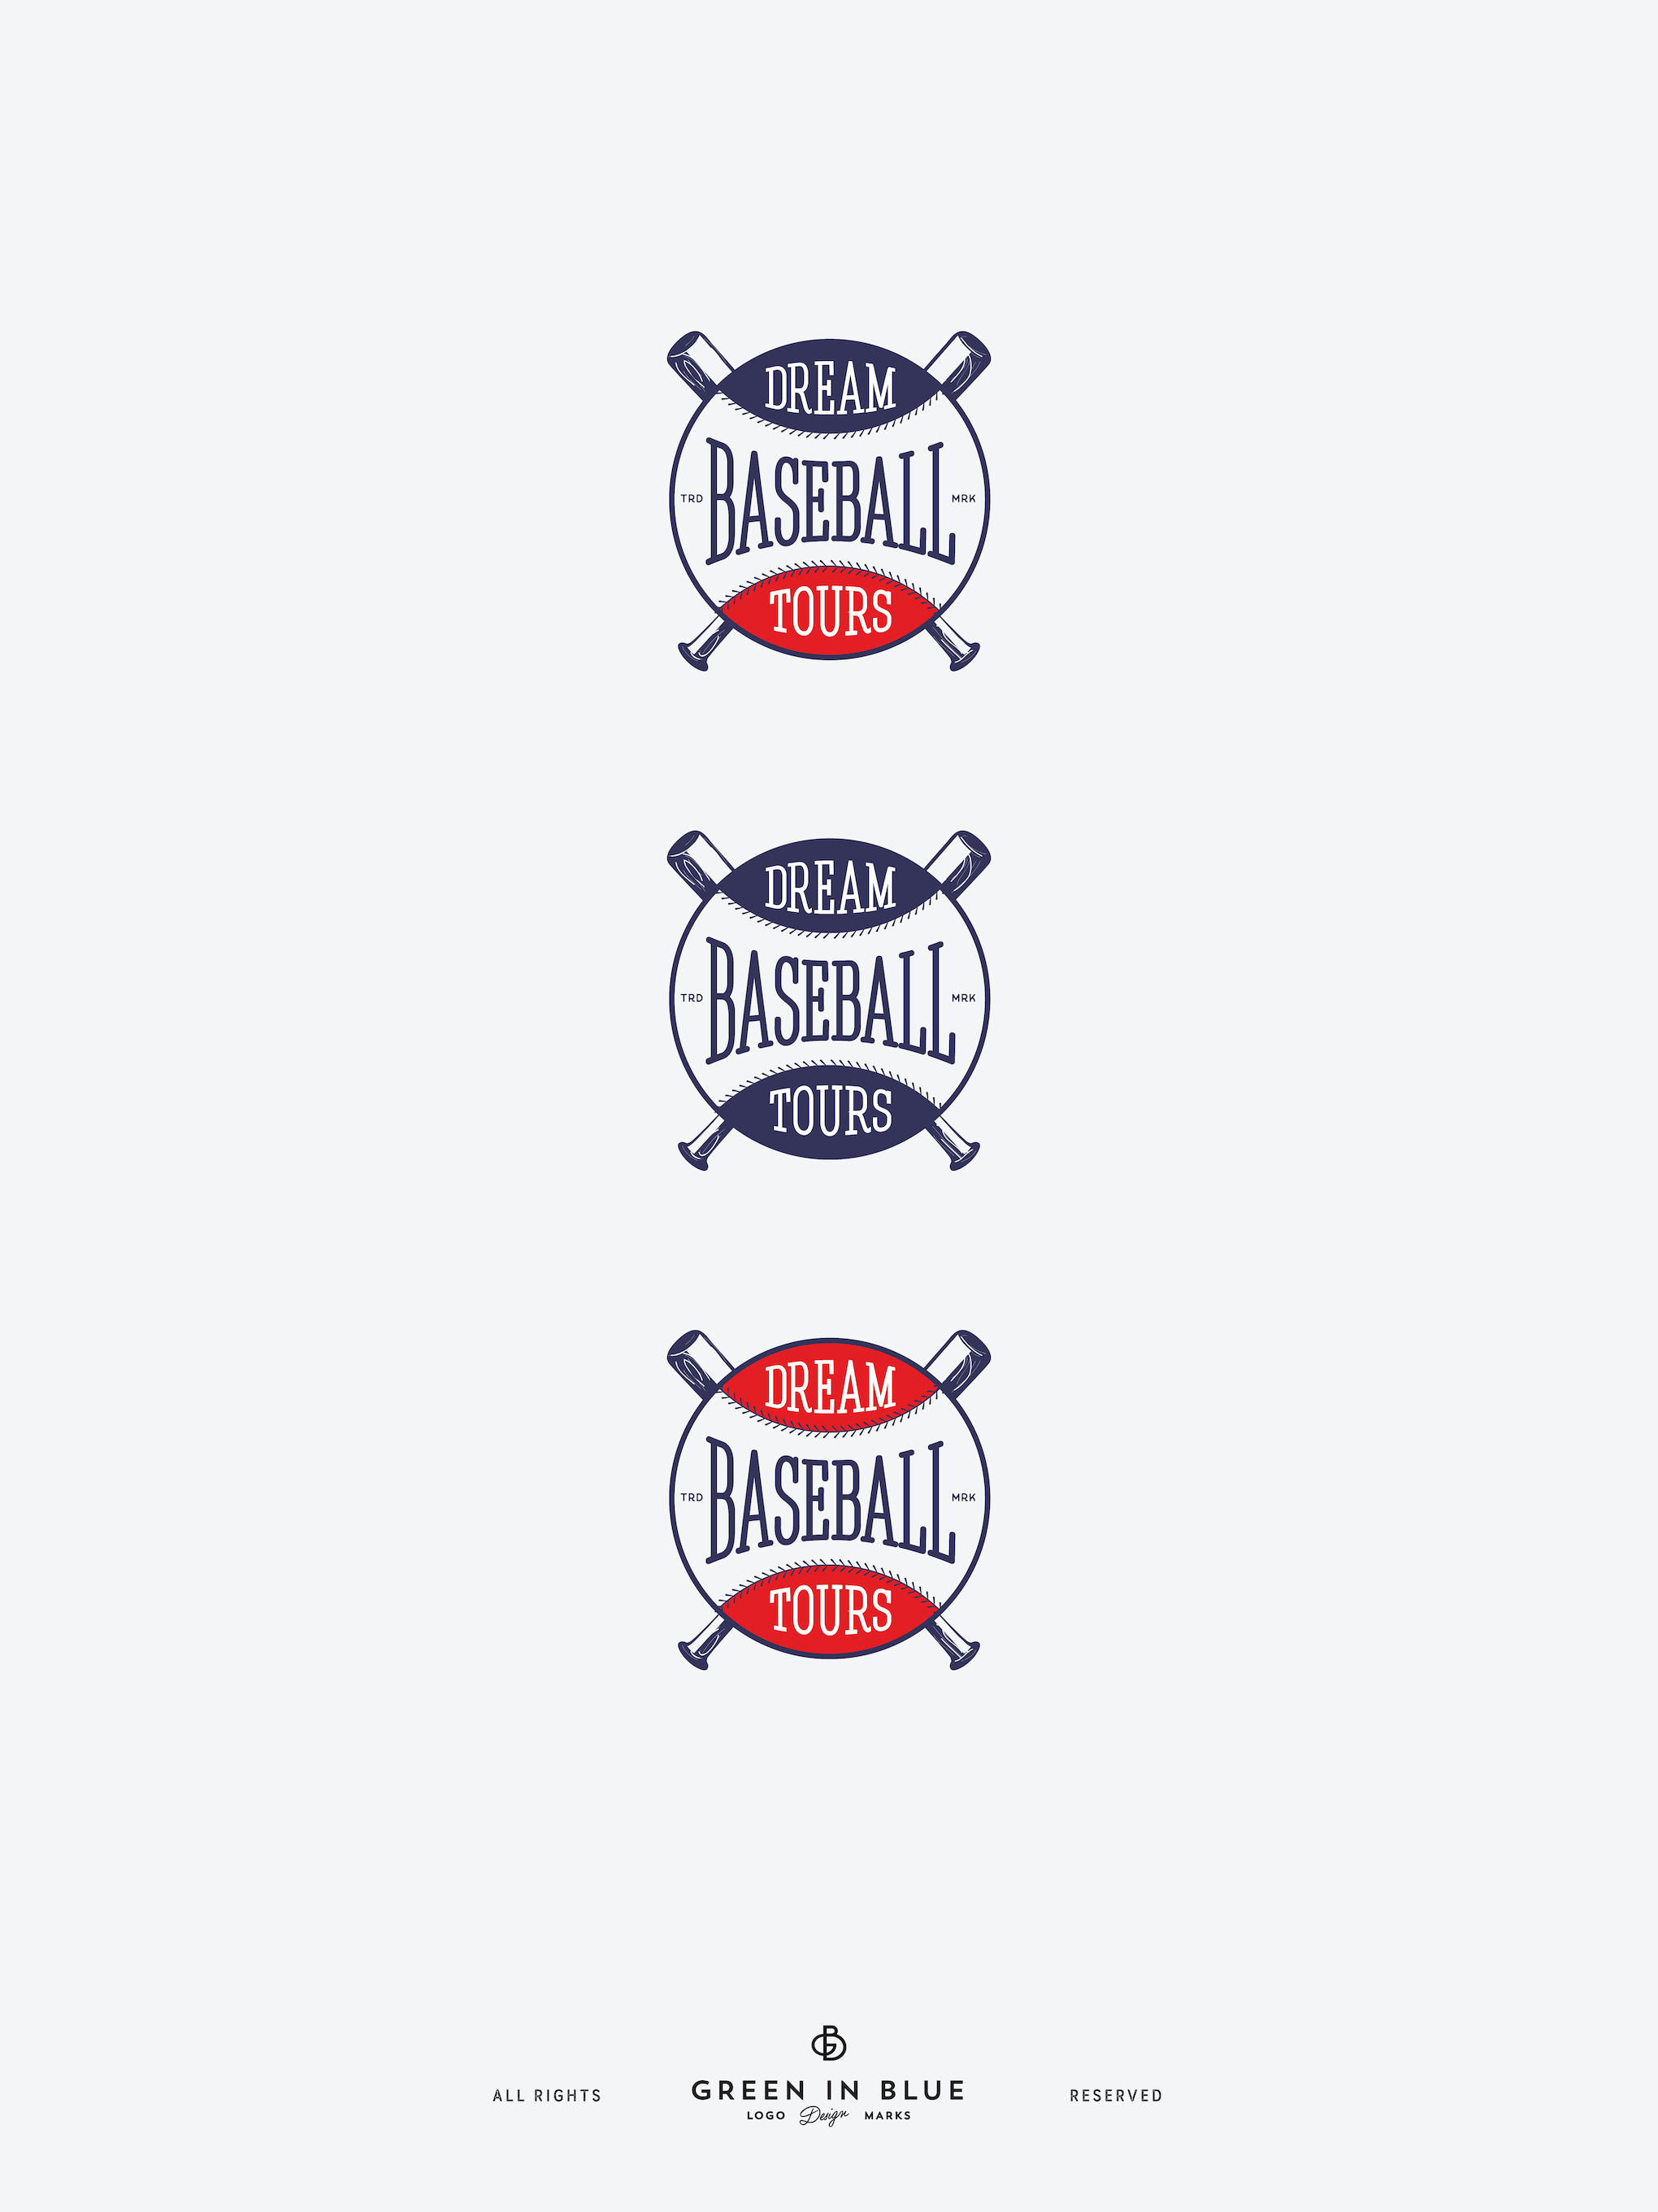 Logo for Dream Baseball Tours, a company that plans and executes baseball stadium tours